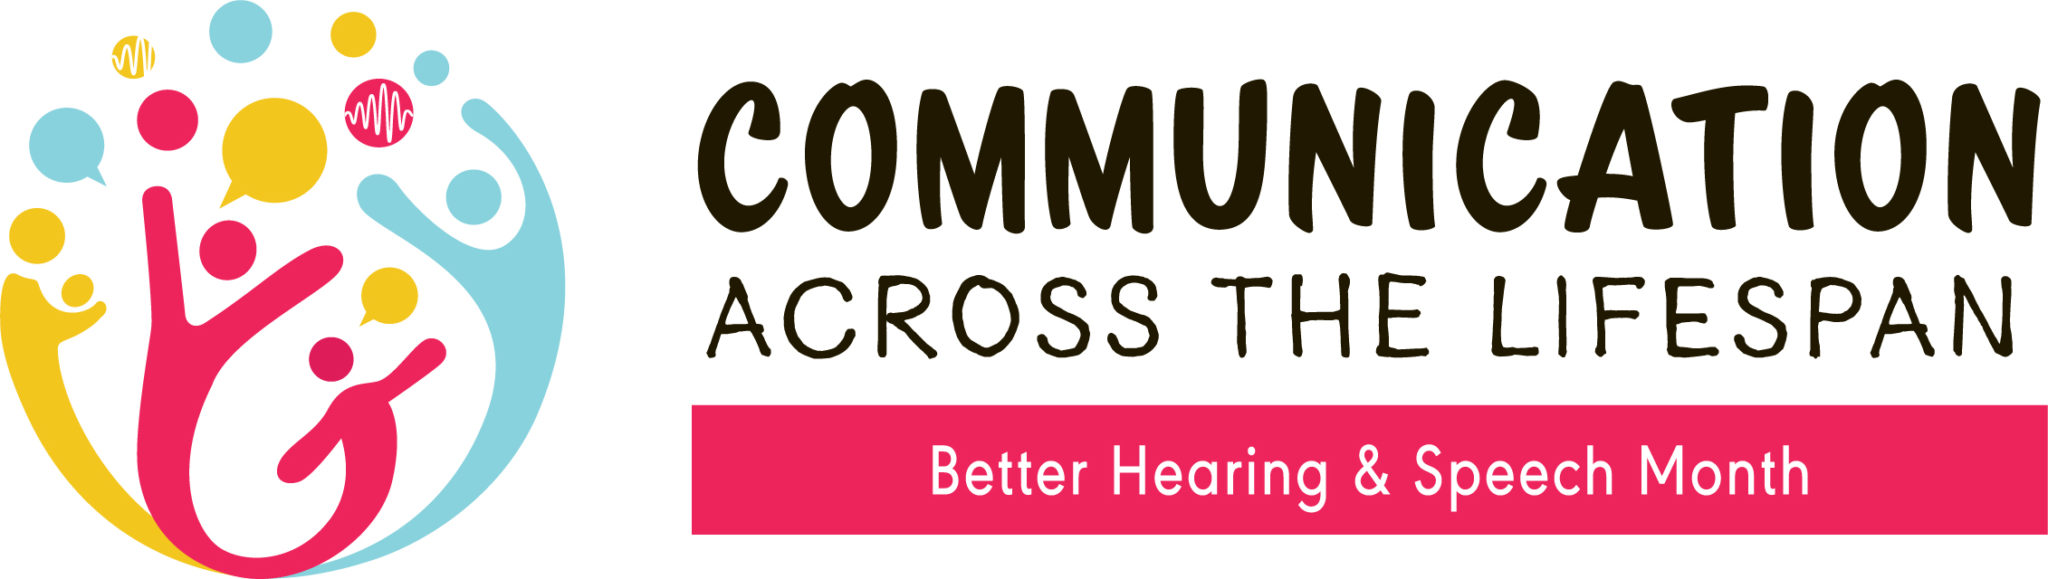 better speech and hearing month logo